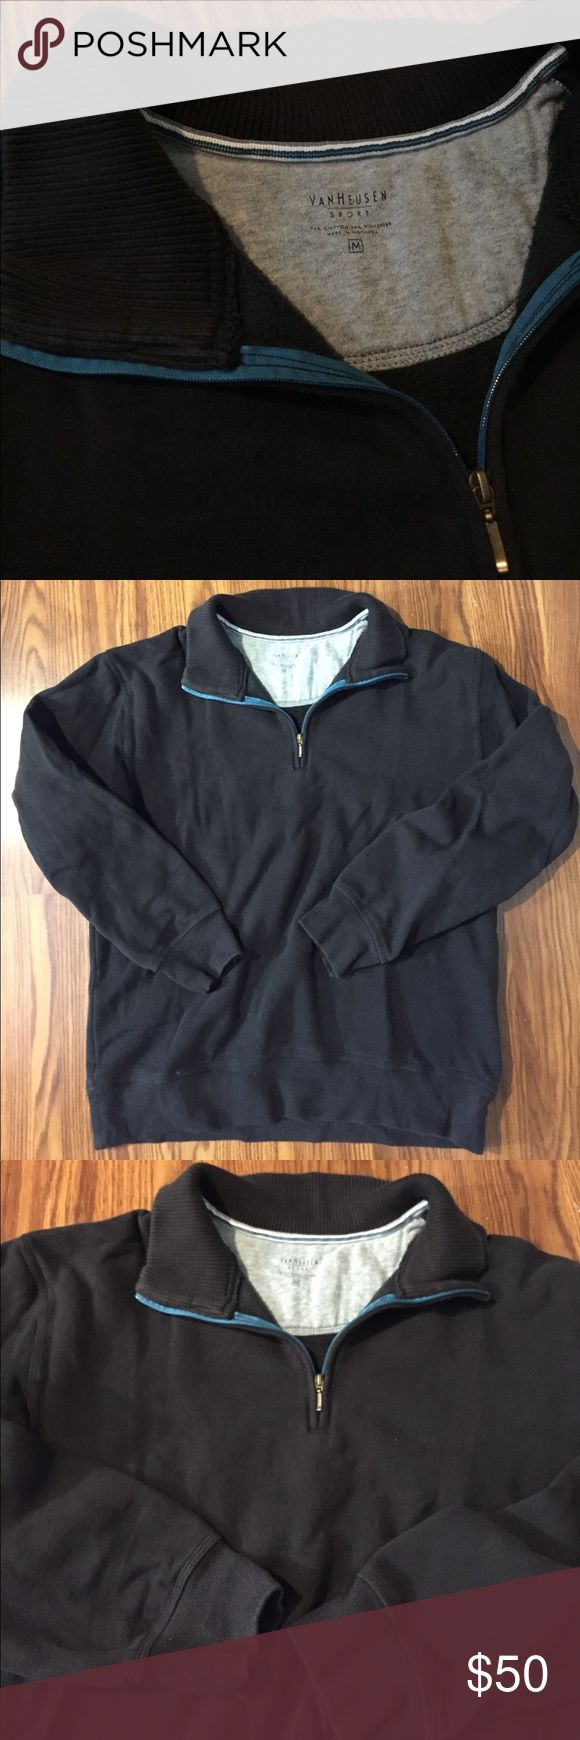 Van Heusen pullover zip up sweater sweatshirt Like-New Van Heusen zip up sweater with collar. Doesn't fit me anymore. Black color with blue rim near the neck/collar area. Really nice for a semi-casual setting. Very warm with good quality material. No damage or stains whatsoever. Shoot me an offer Van Heusen Sweaters Zip Up